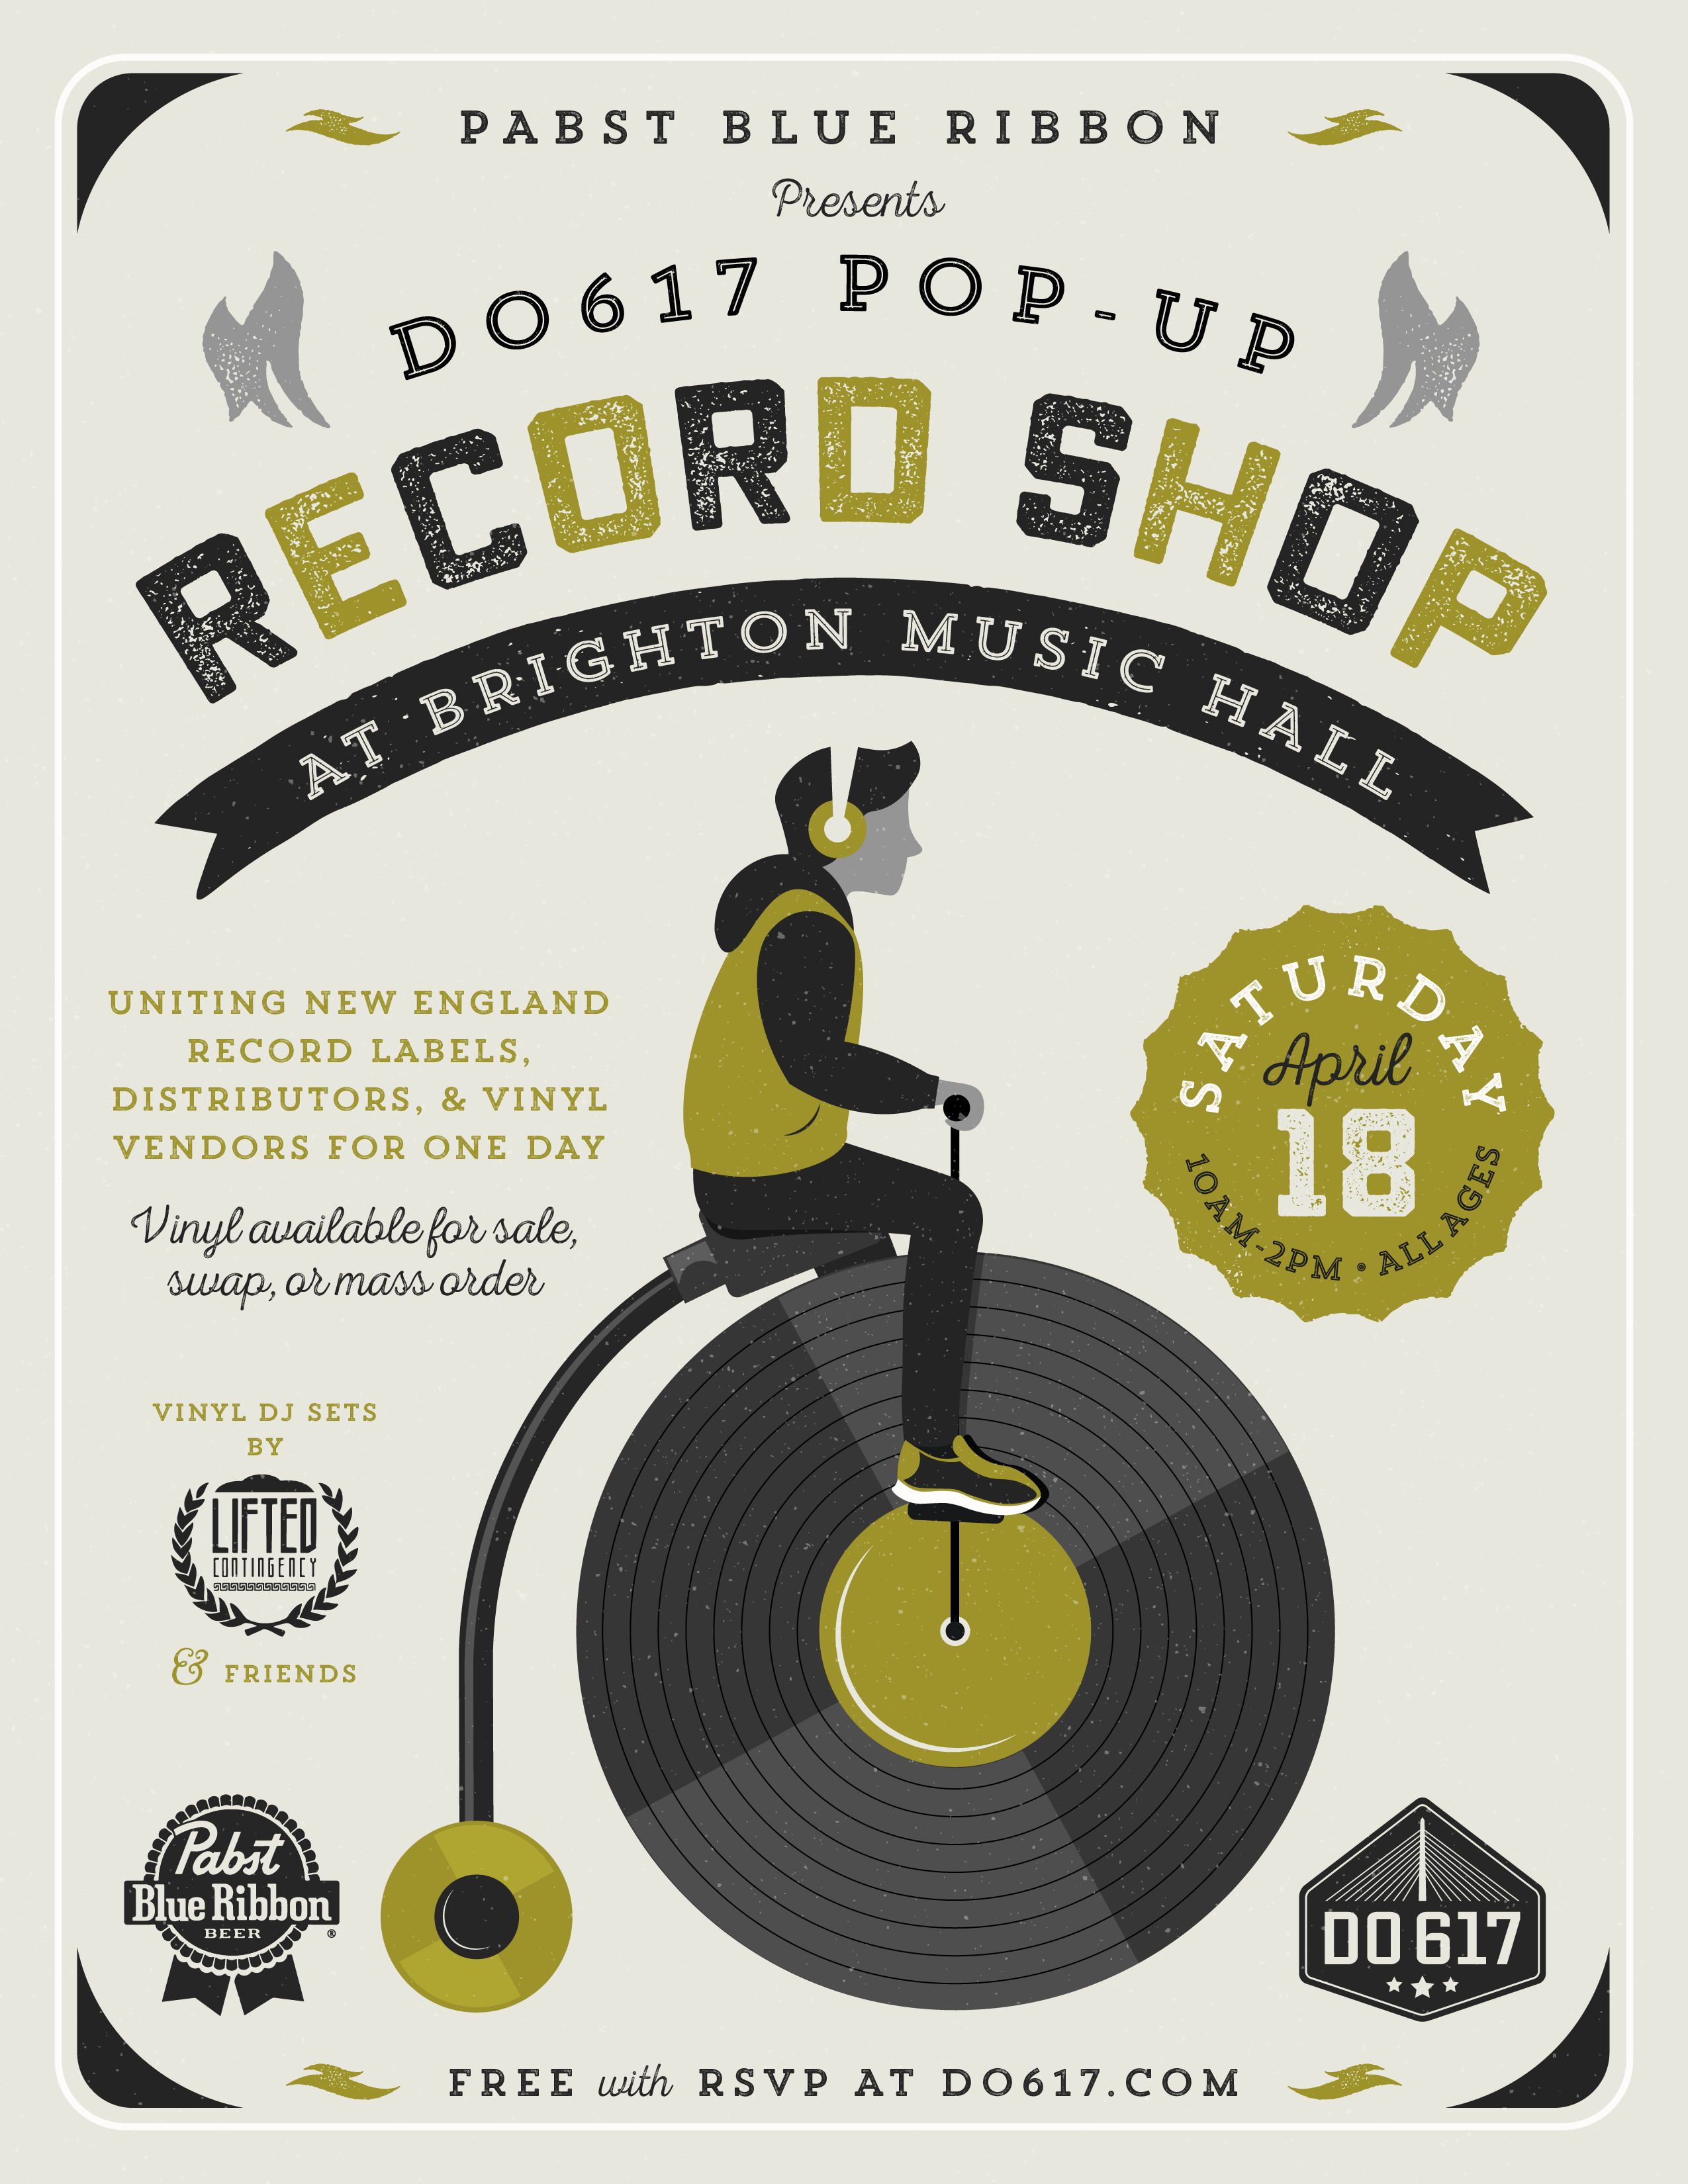 Do617 Pop-Up Record Shop in Boston at Brighton Music Hall